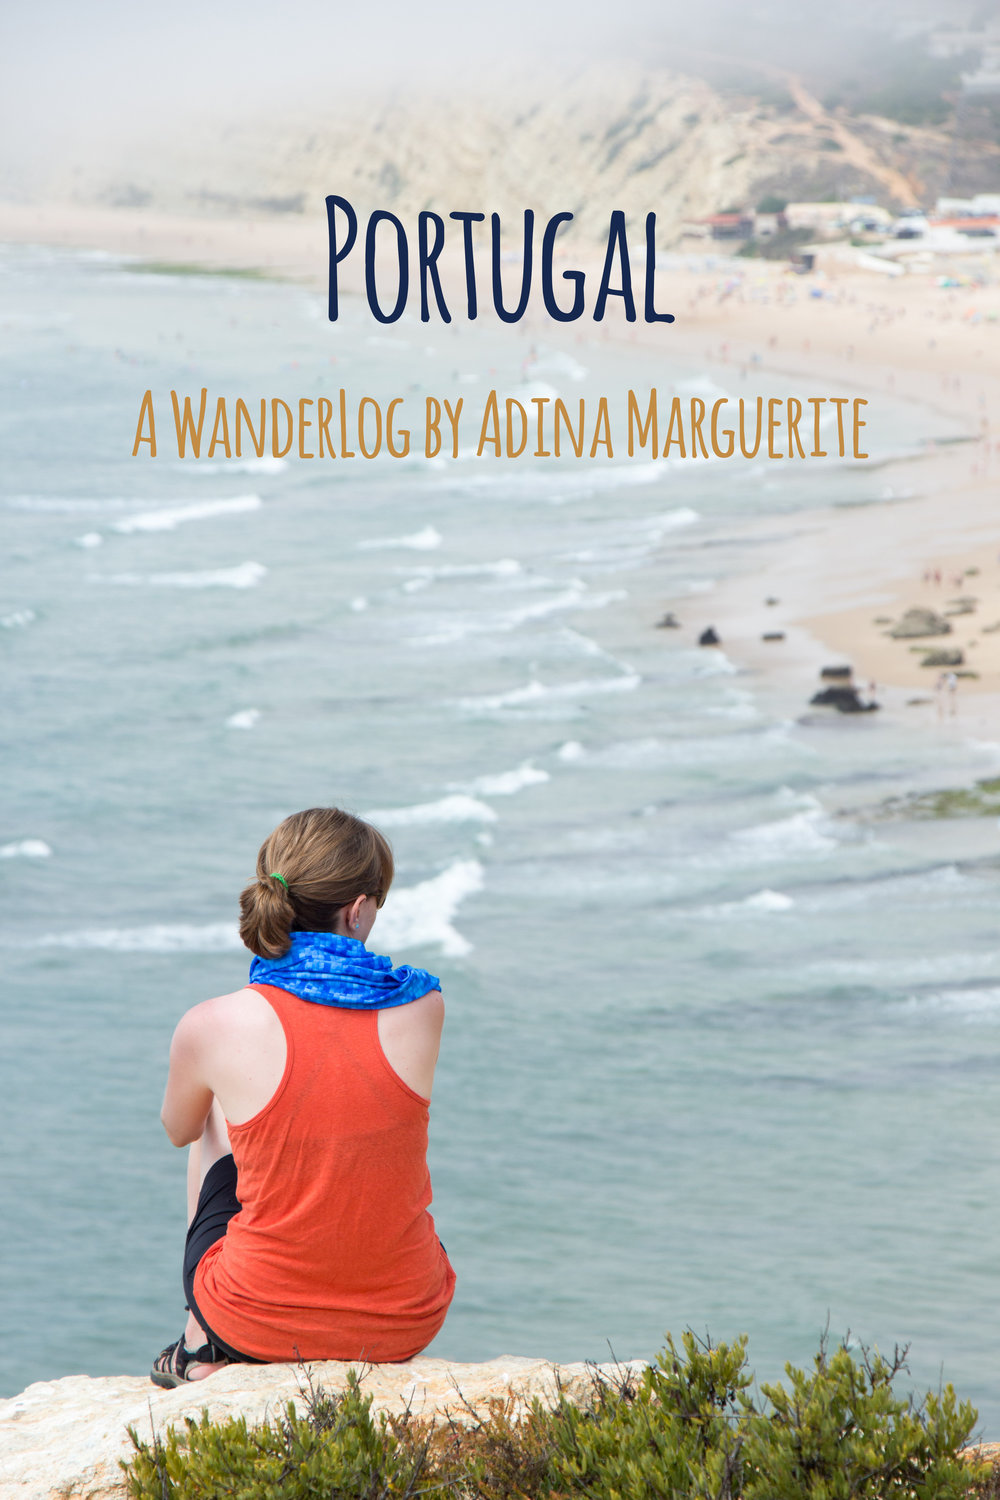 Wander Log: Portugal by Adina Marguerite